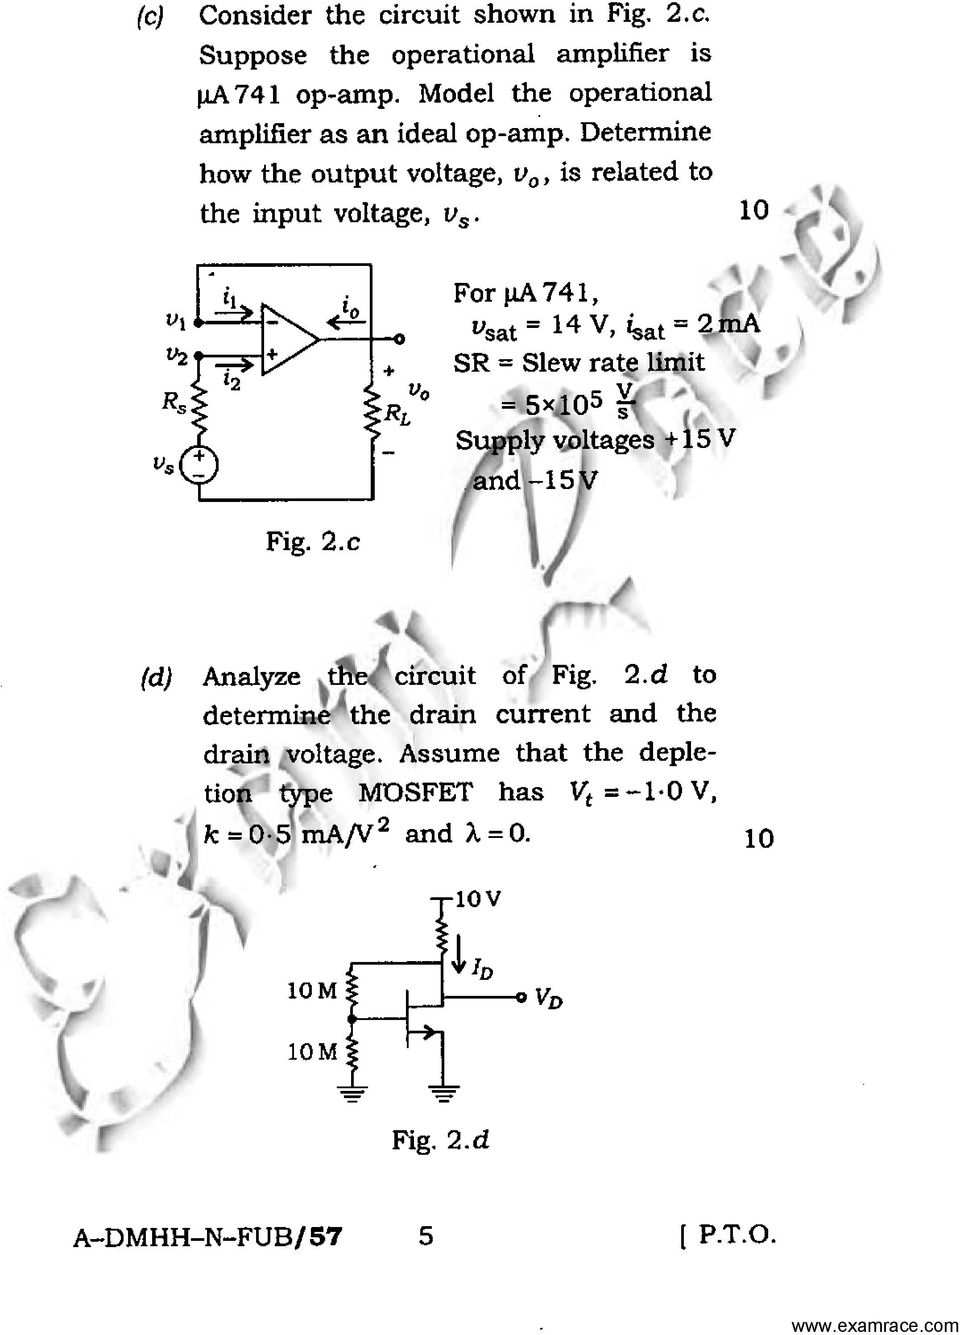 Ua741 Op Amp Diagram As Well Circuits Ex Les Problems Electronics And Telecommunication Engineering Paper Conventional 741 Vsat 14 V Isat 2ma Sr Slew Rate